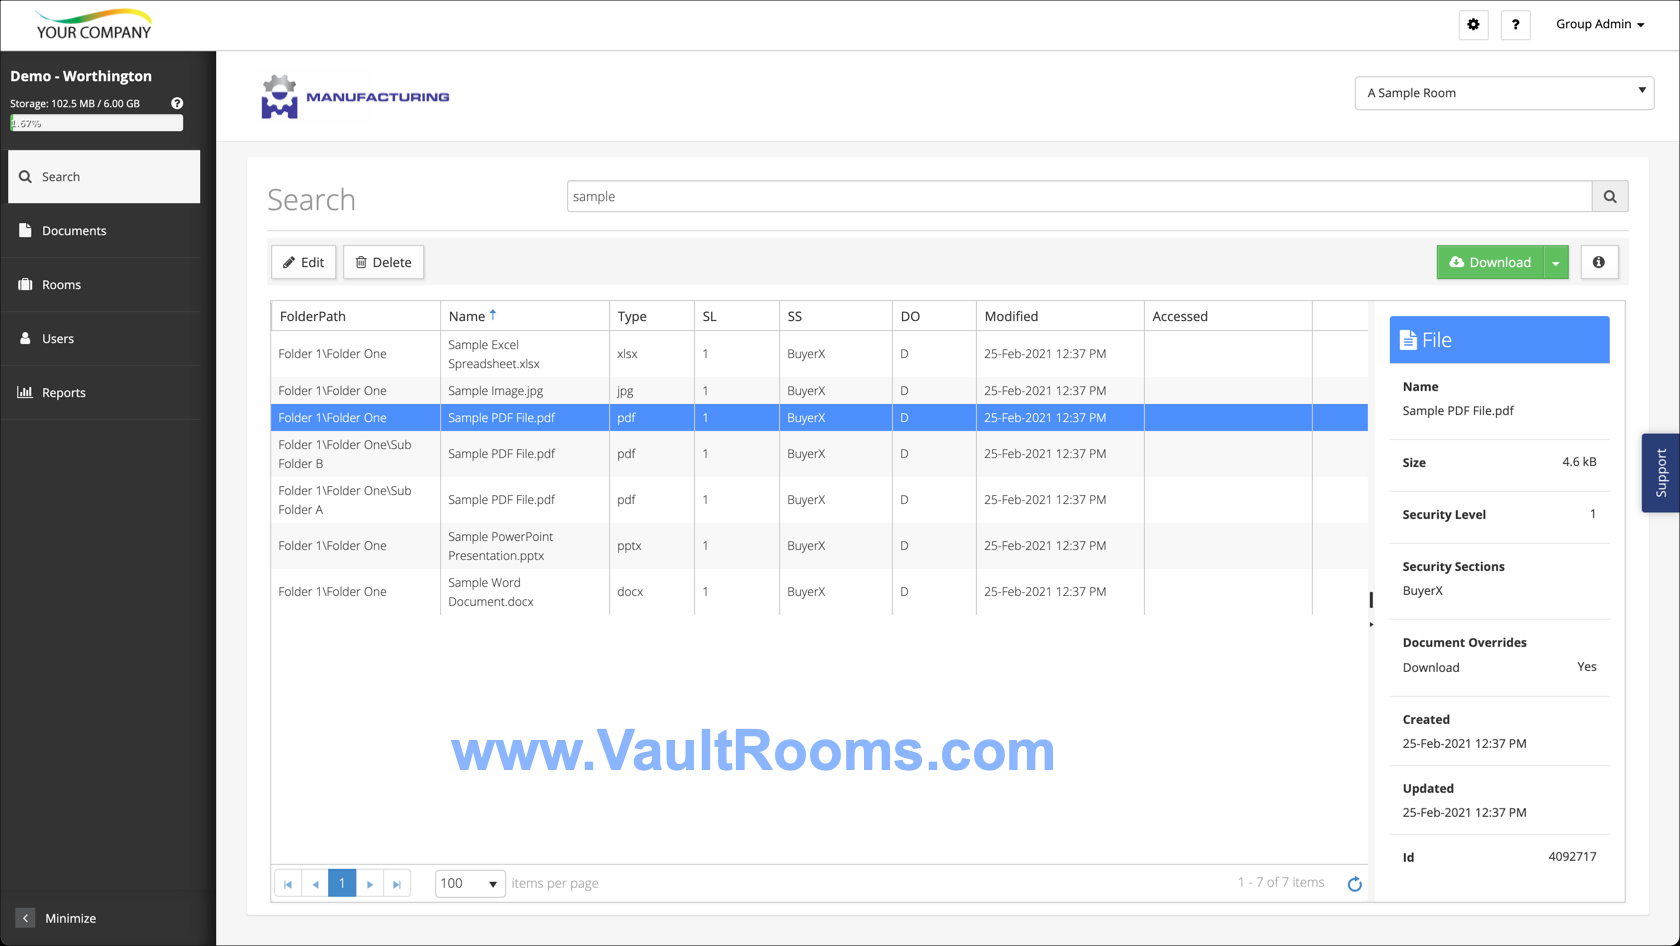 Vault Rooms Search Screen